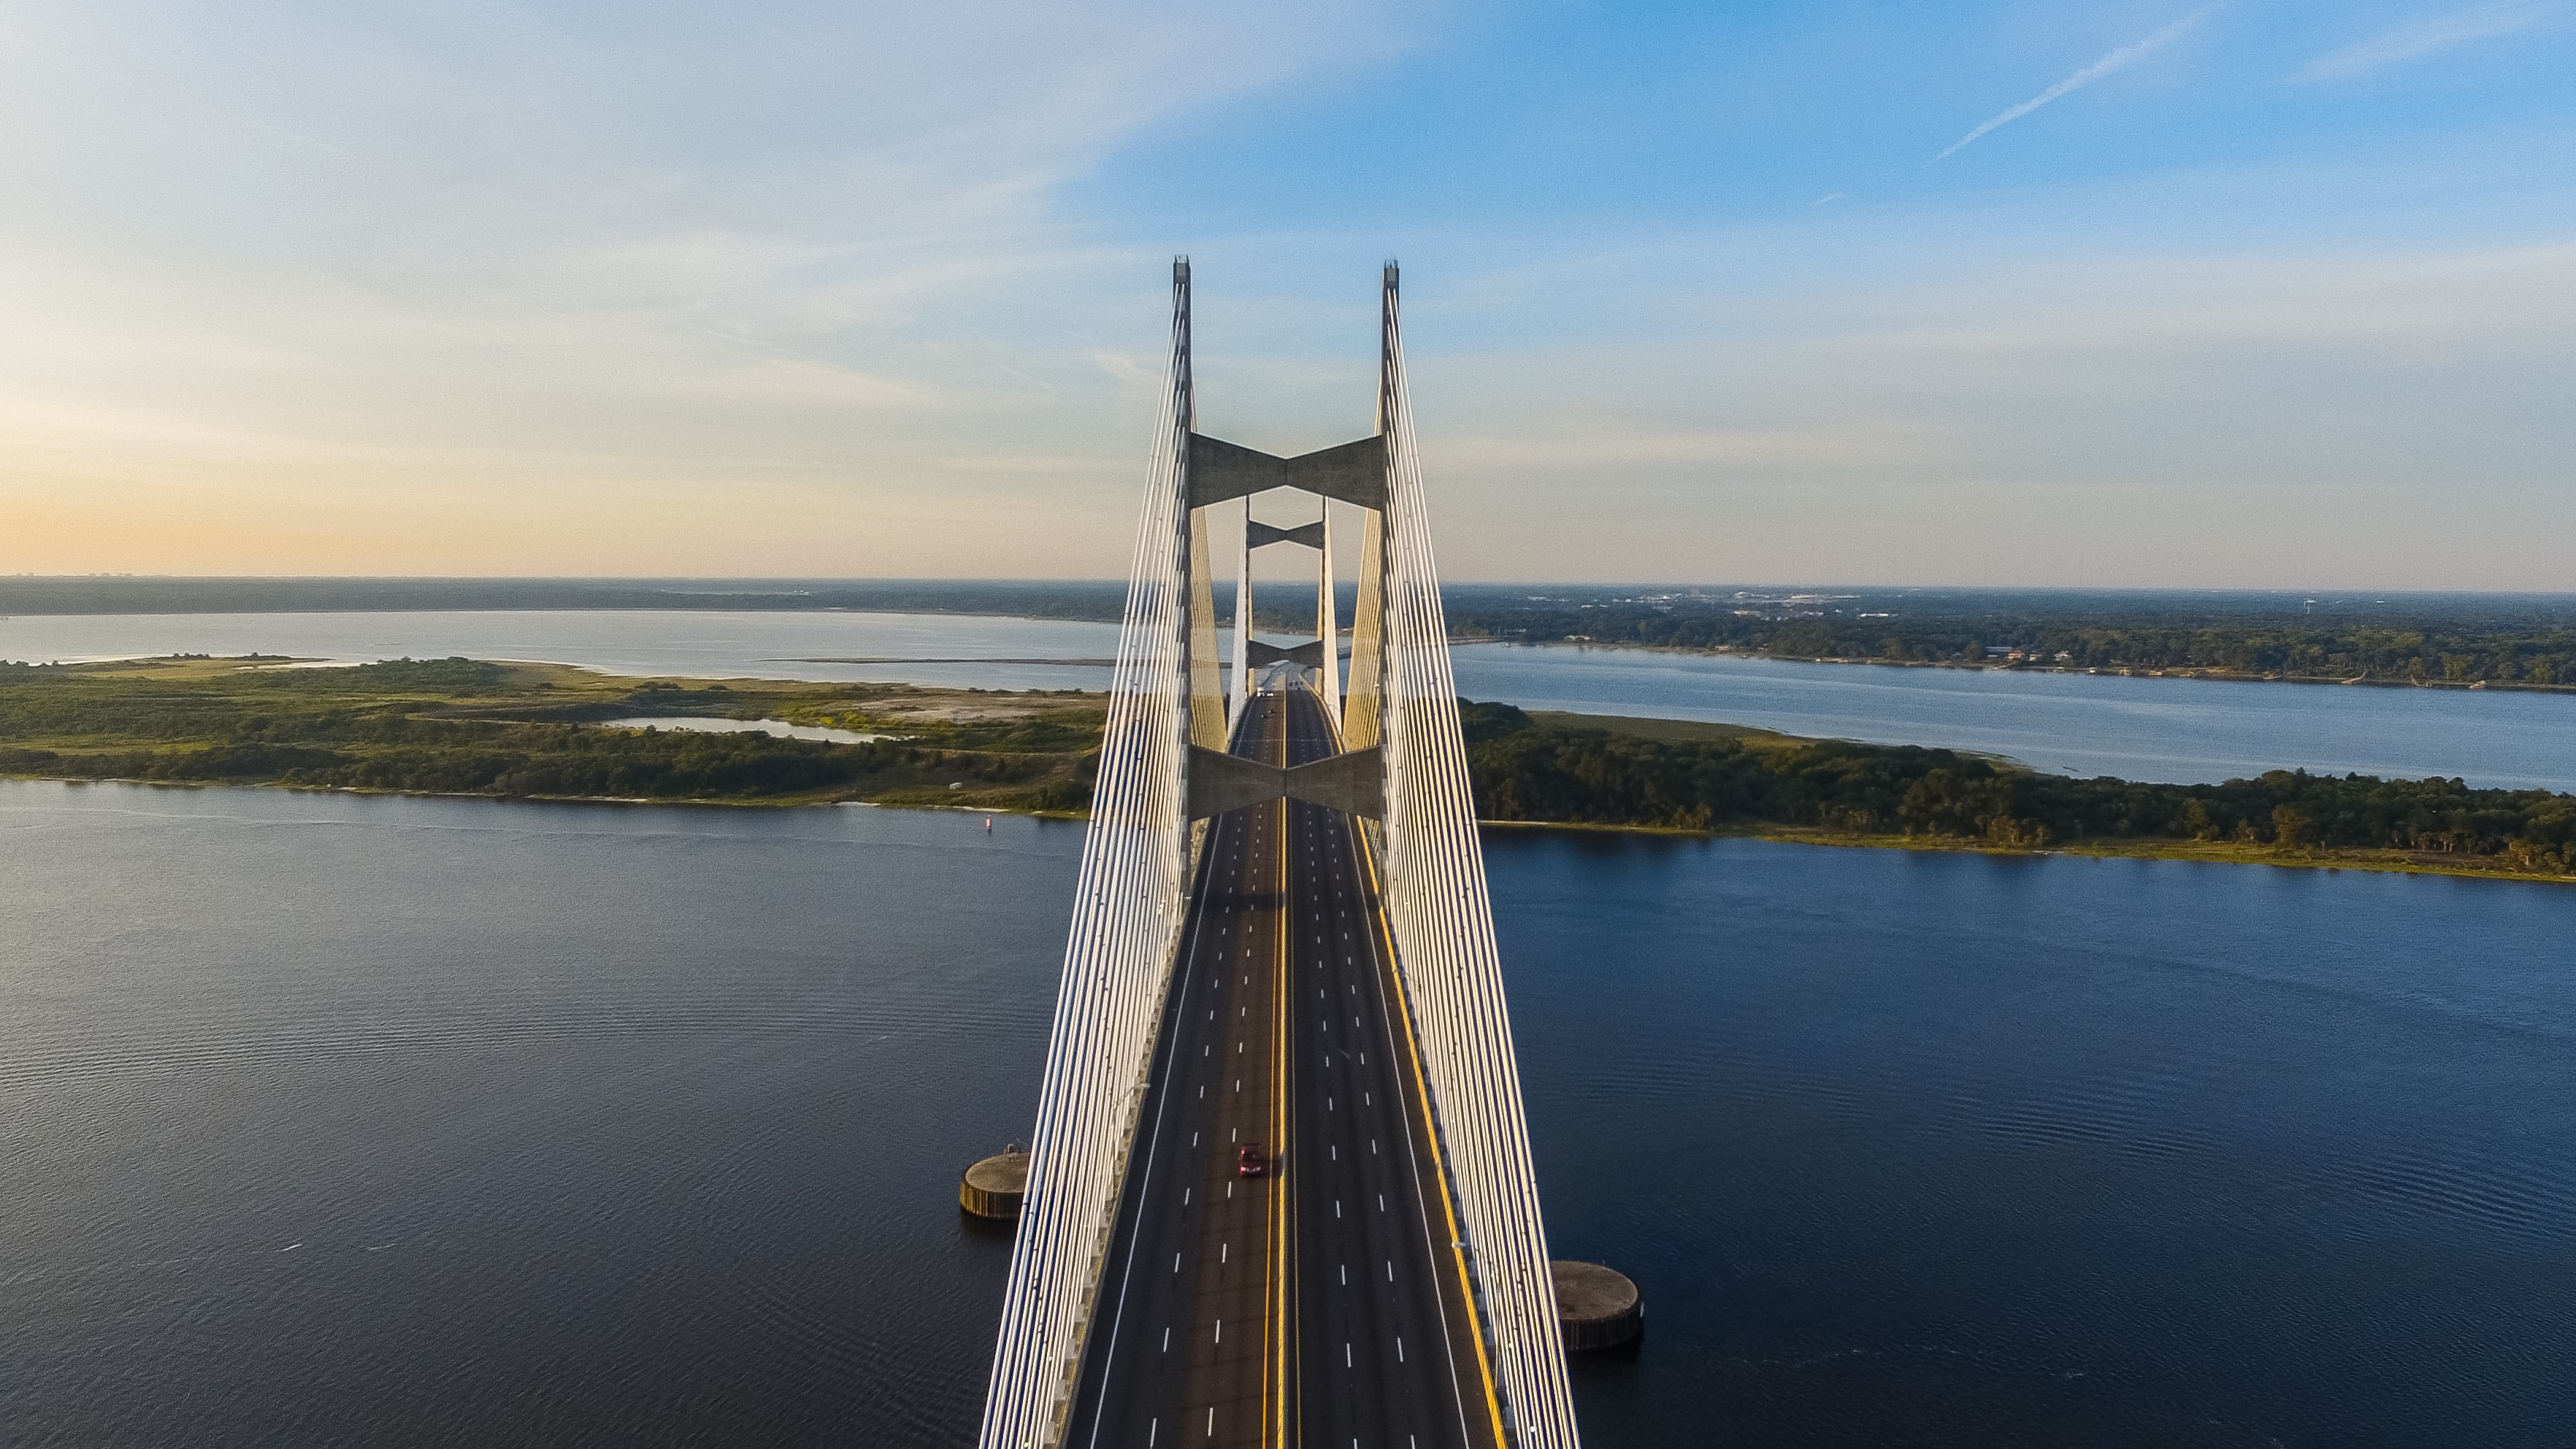 aerial view of bridge during daytime